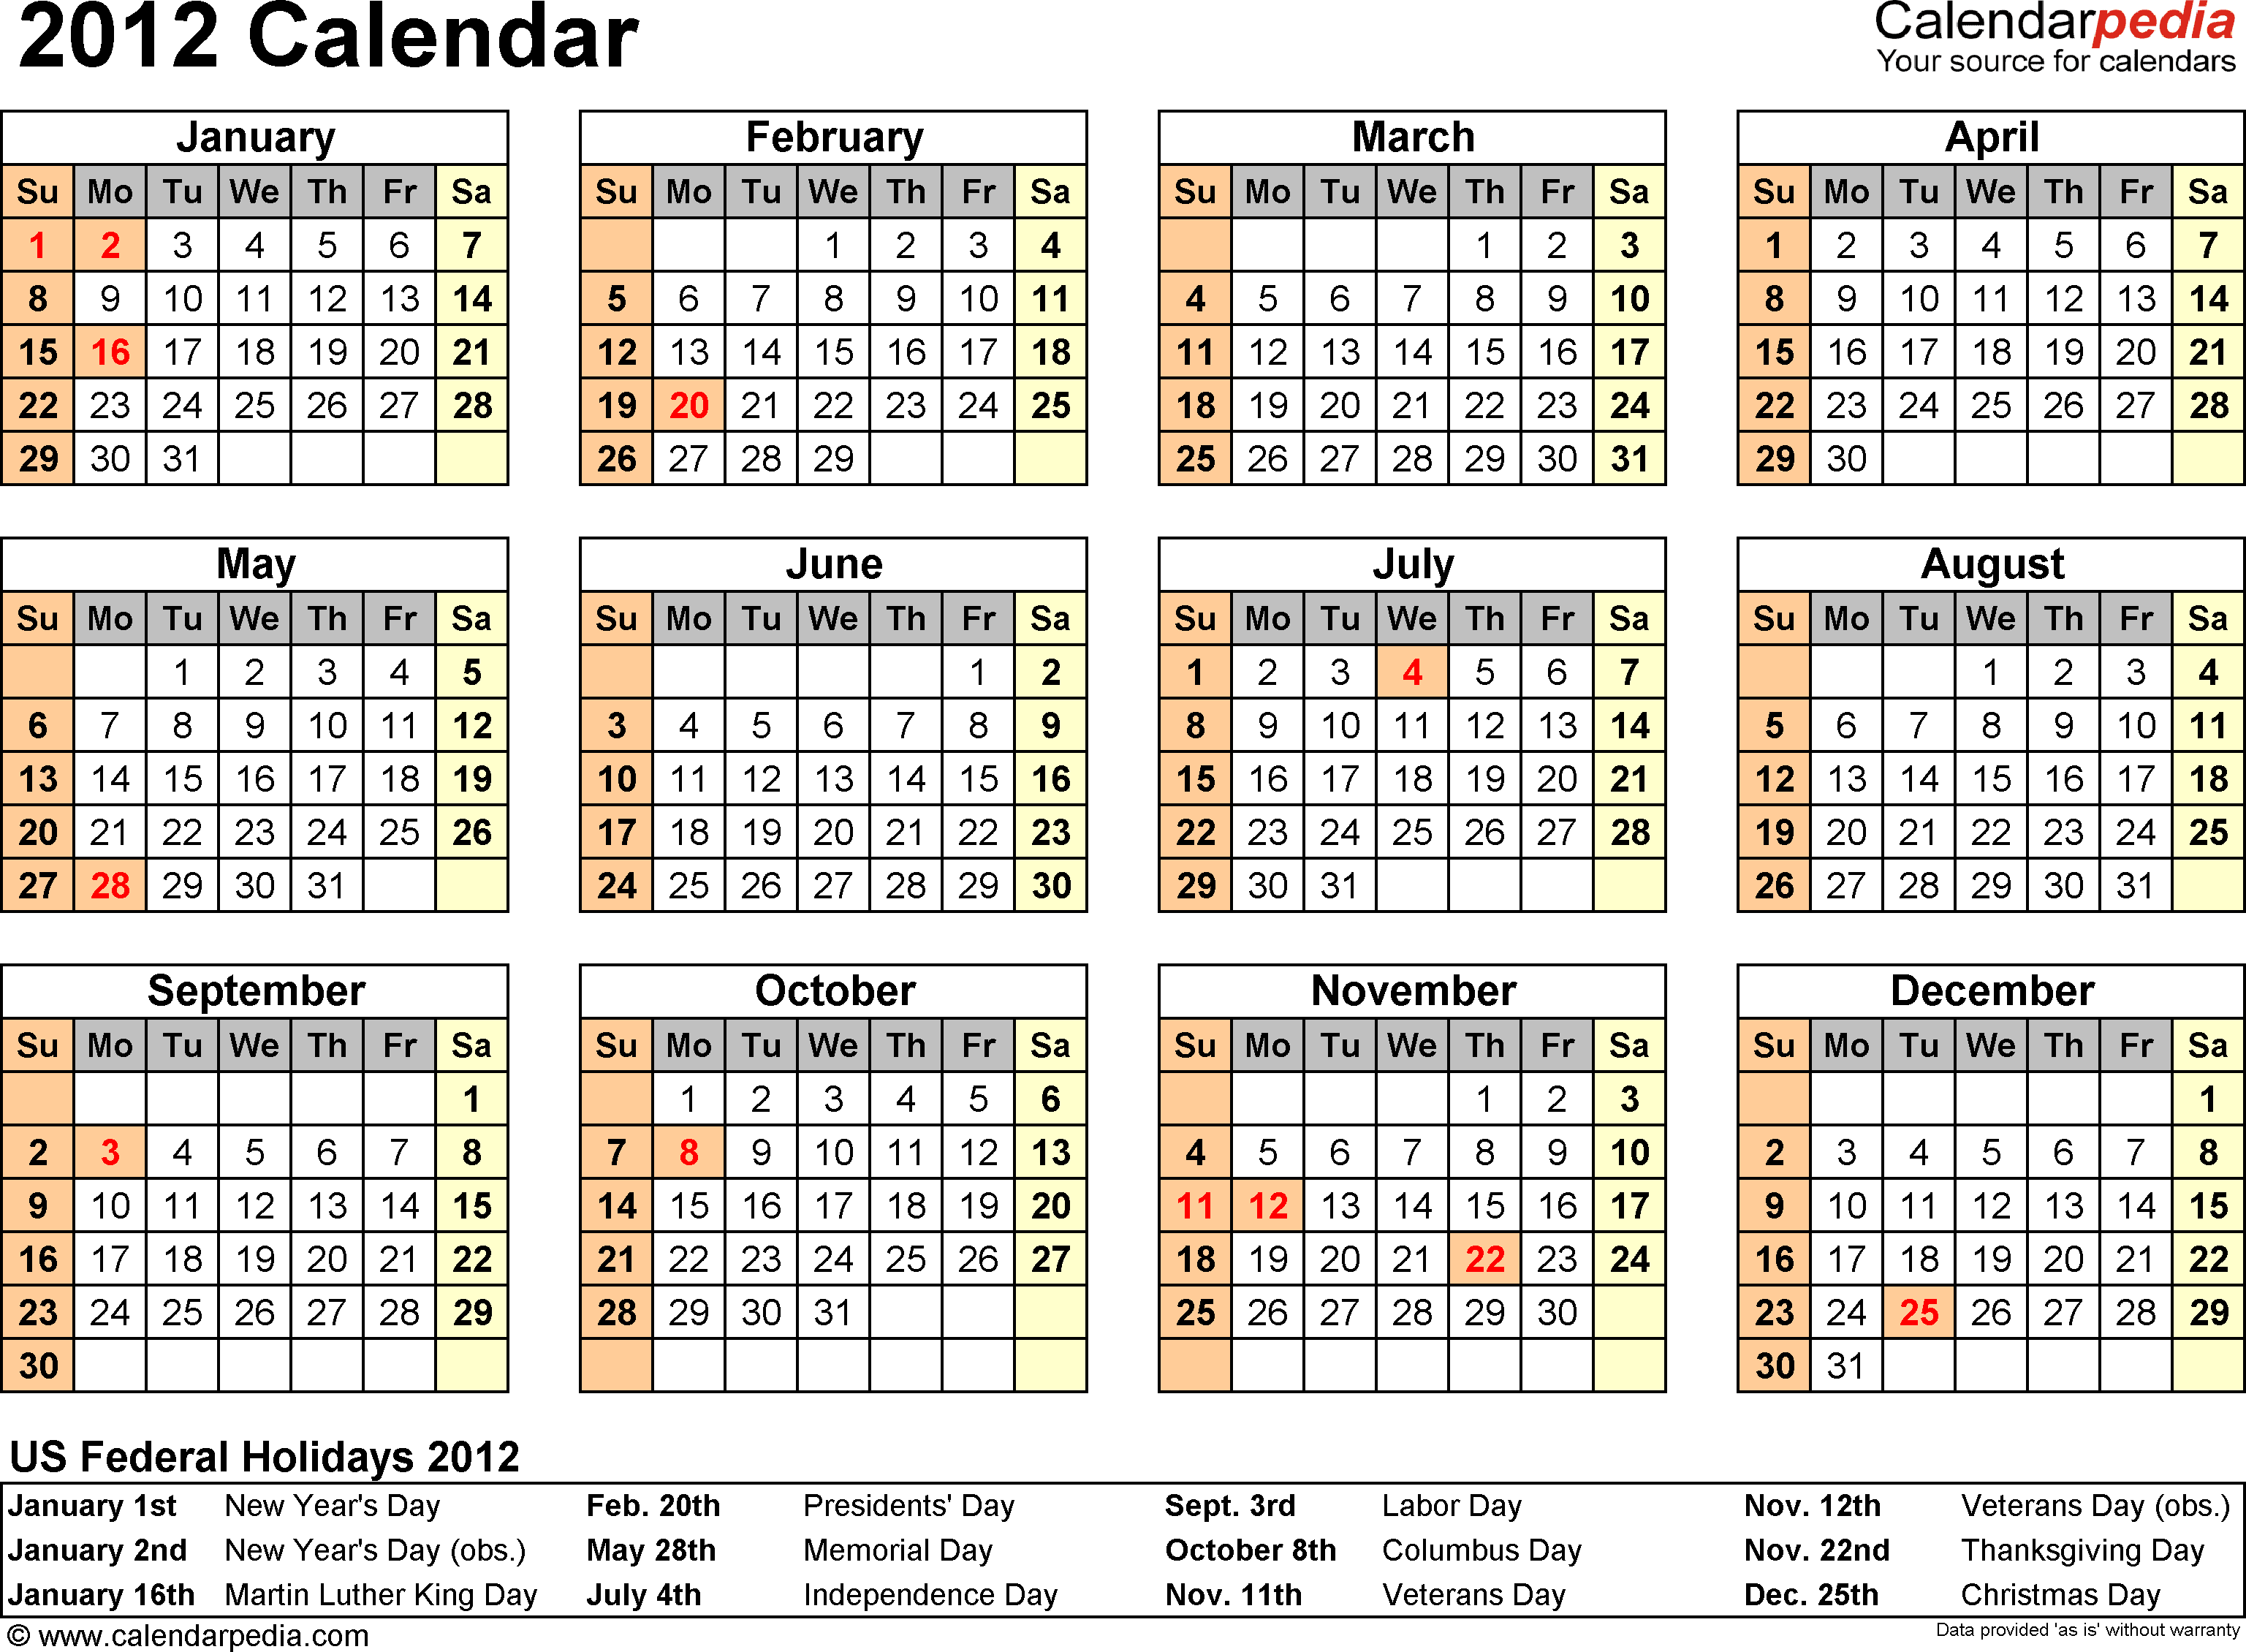 Download Download PDF template for 2012 calendar template 6: year at a glance, 1 page